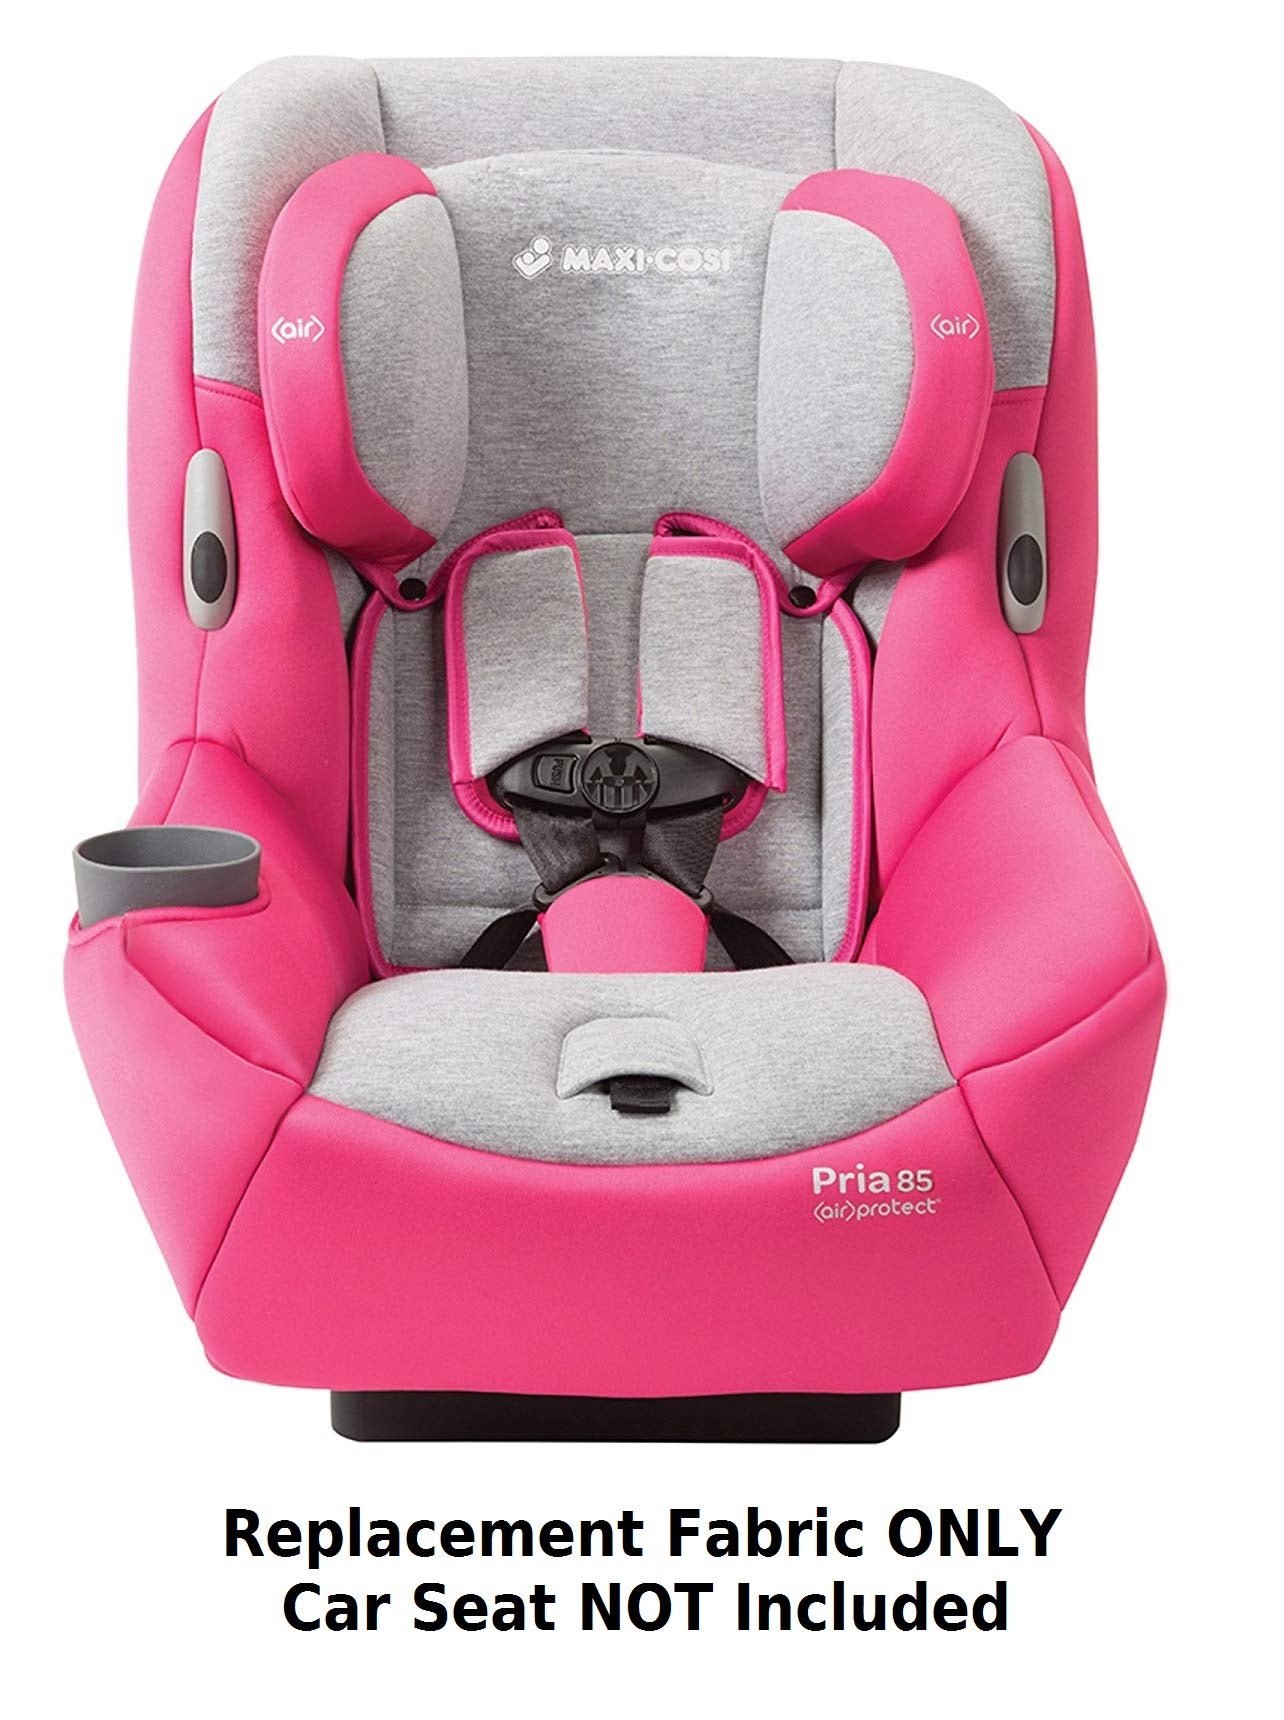 Maxi-Cosi Pria 85 Replacement Cover - Passionate Pink